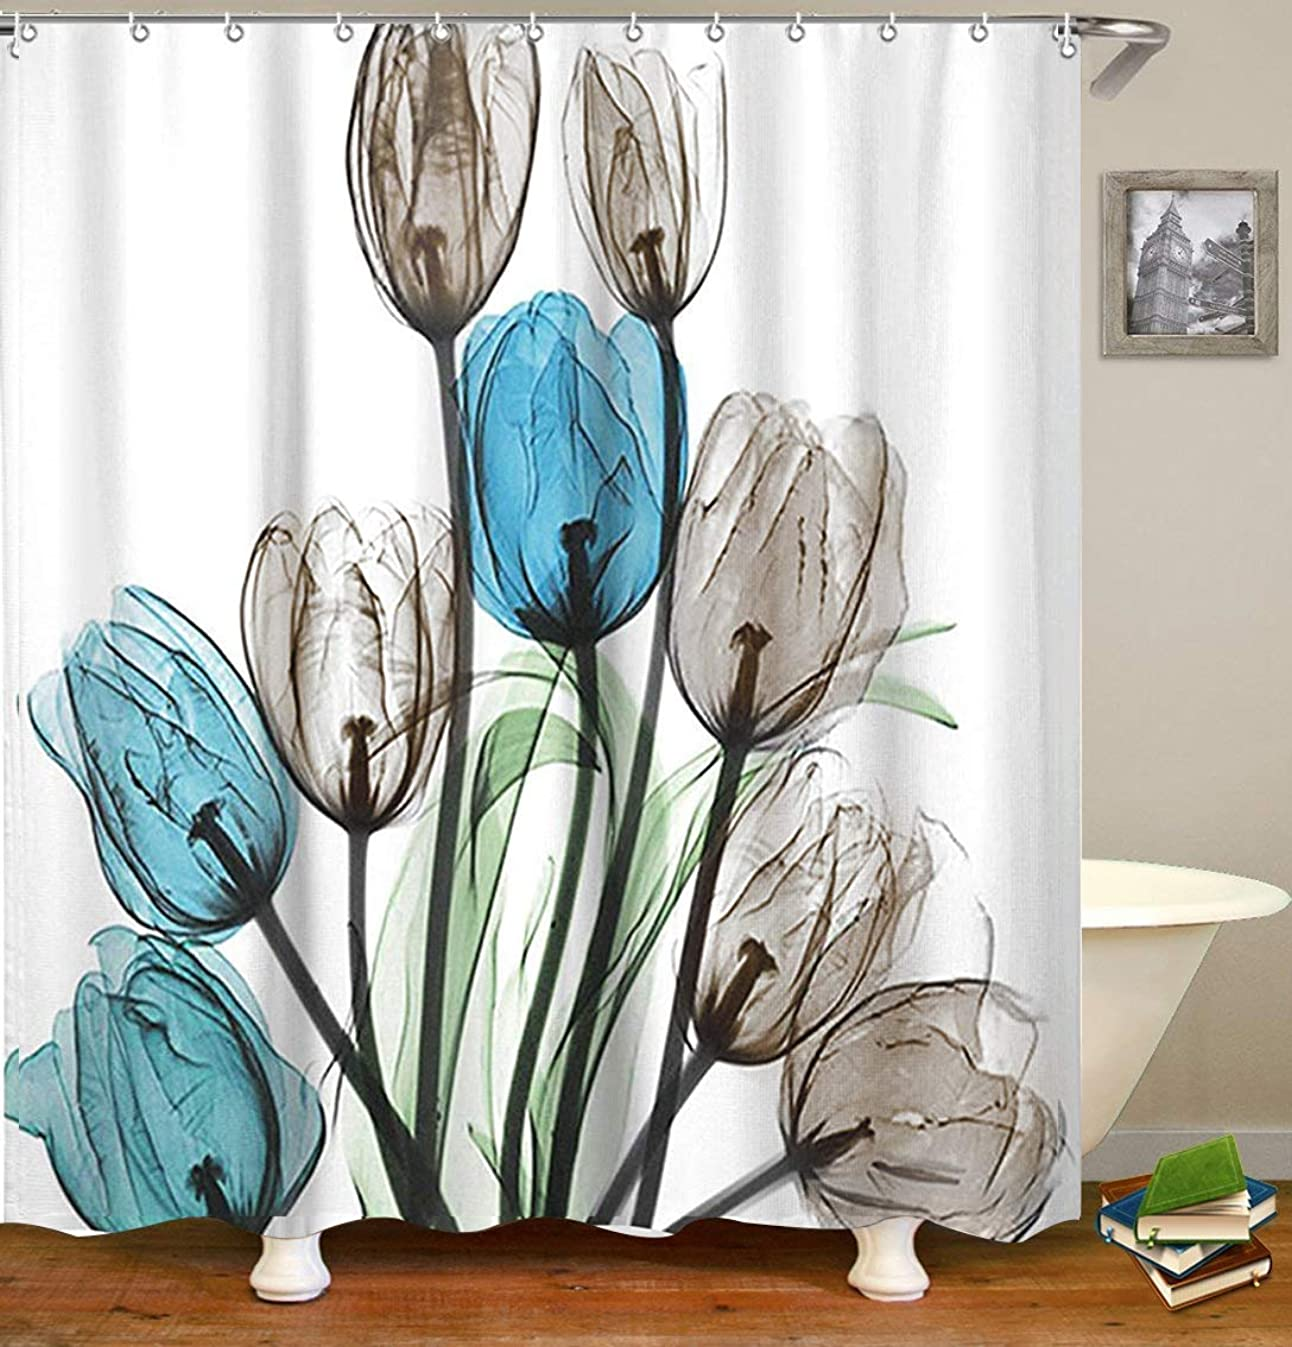 LIVILAN Shower Curtain Set with 12 Hooks Floral Bath Curtain Thick Fabric Bathroom Curtains Home Decorations for Bathroom Blue Grey Brown Tulip Flower Shower Curtain 72